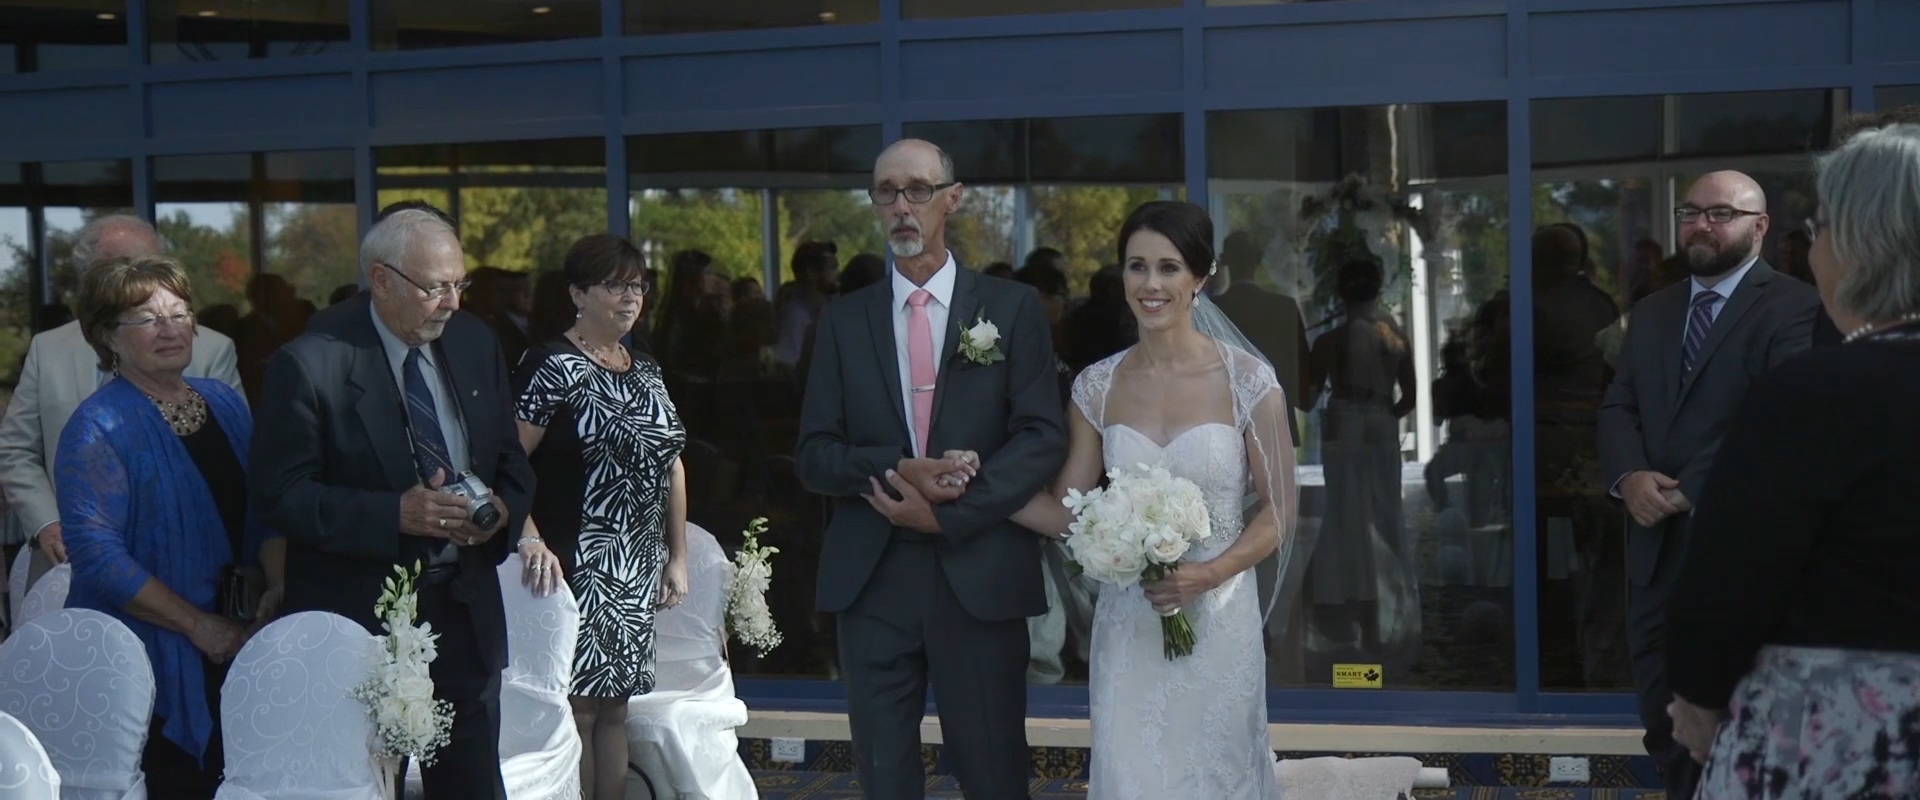 Image of a bride walking down the aisle at Lionhead golf course; taken from one of our Toronto Wedding Videography videos